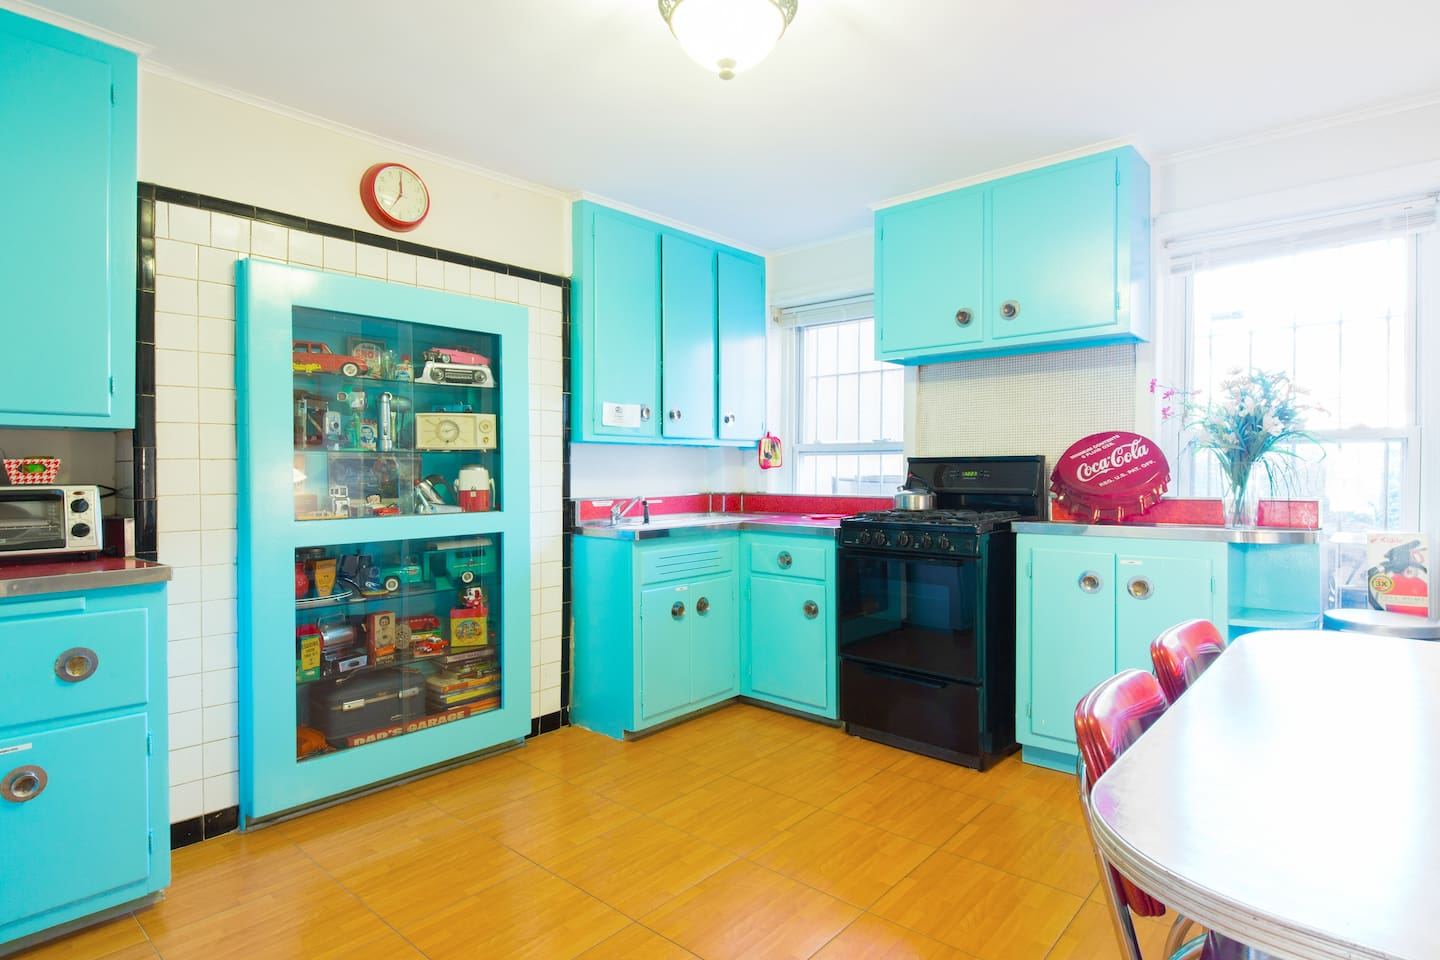 Our authentic 1950's kitchen!